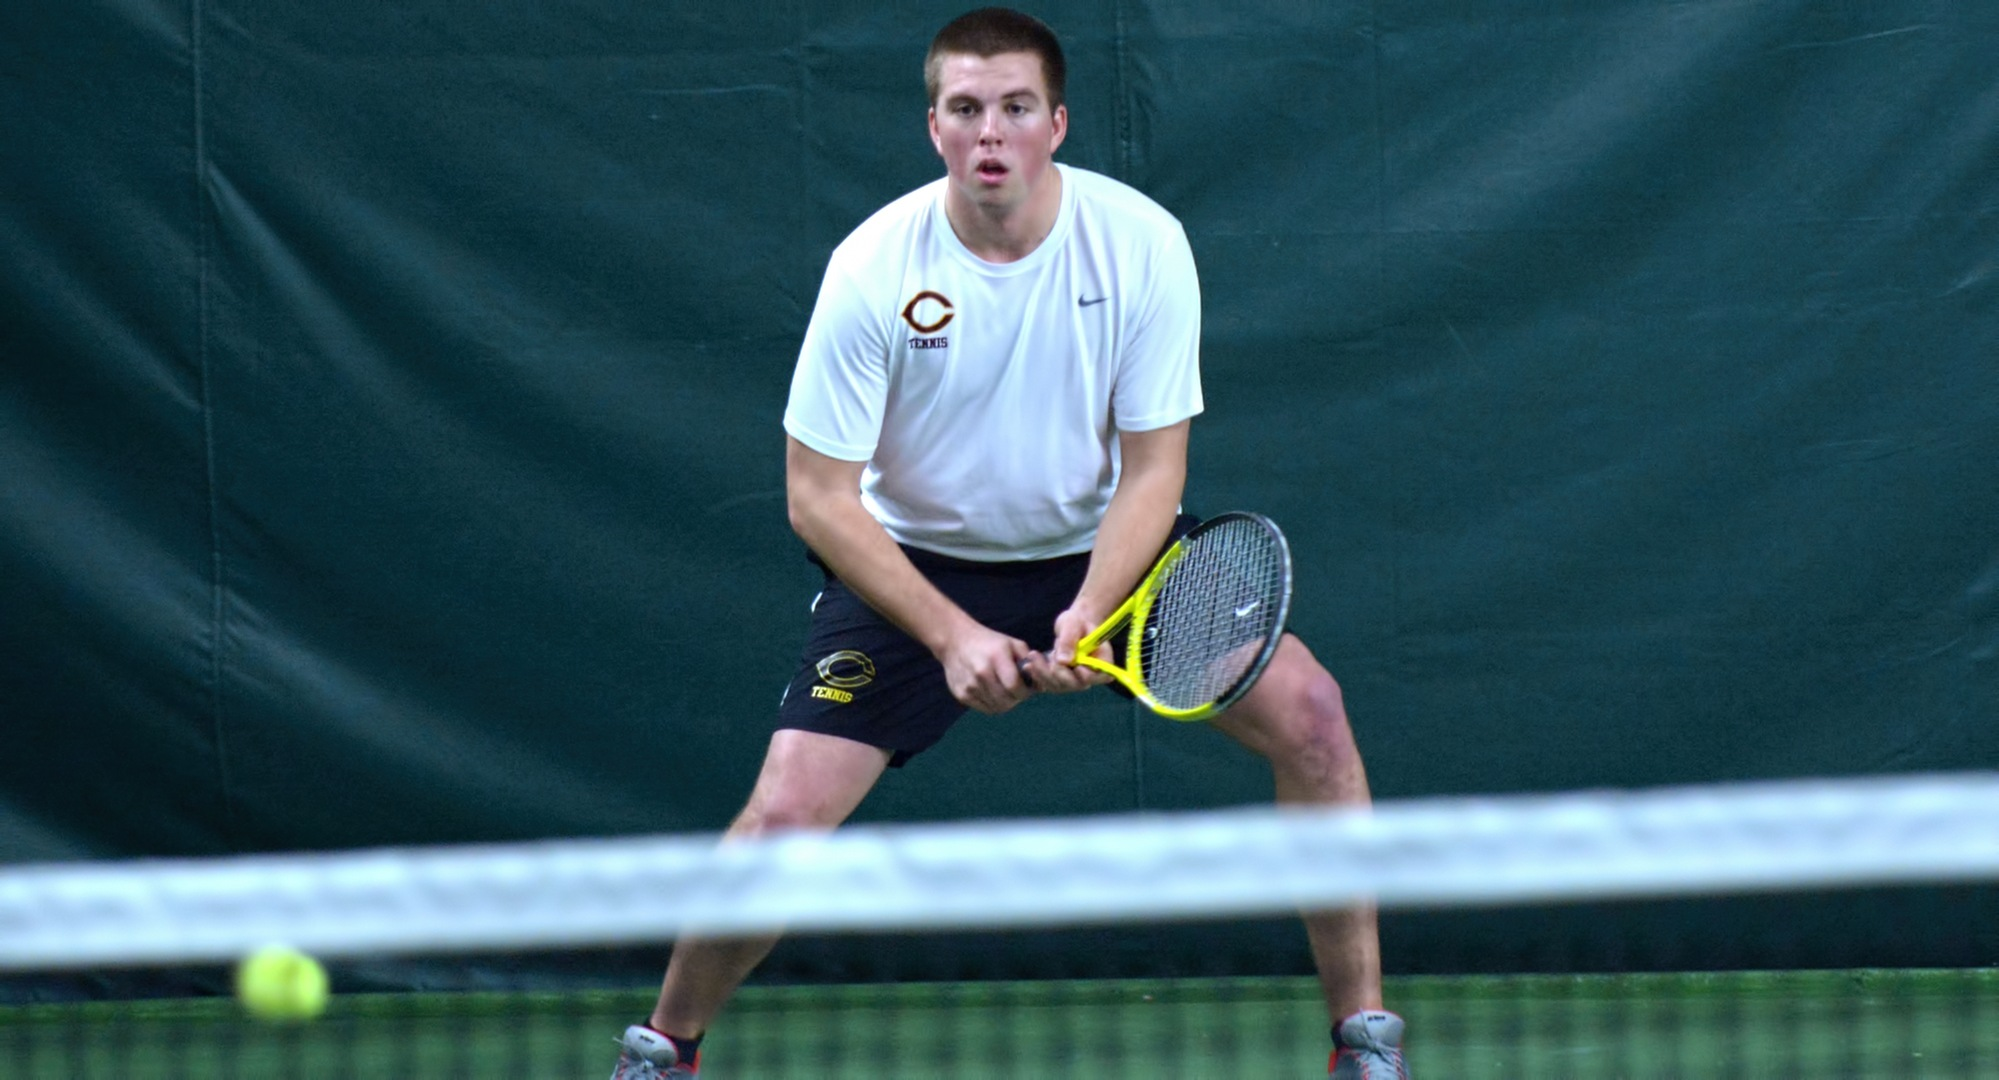 Junior Isaac Toivonen recorded a straight-set win against Macalester against the same opponent who swept him last season.